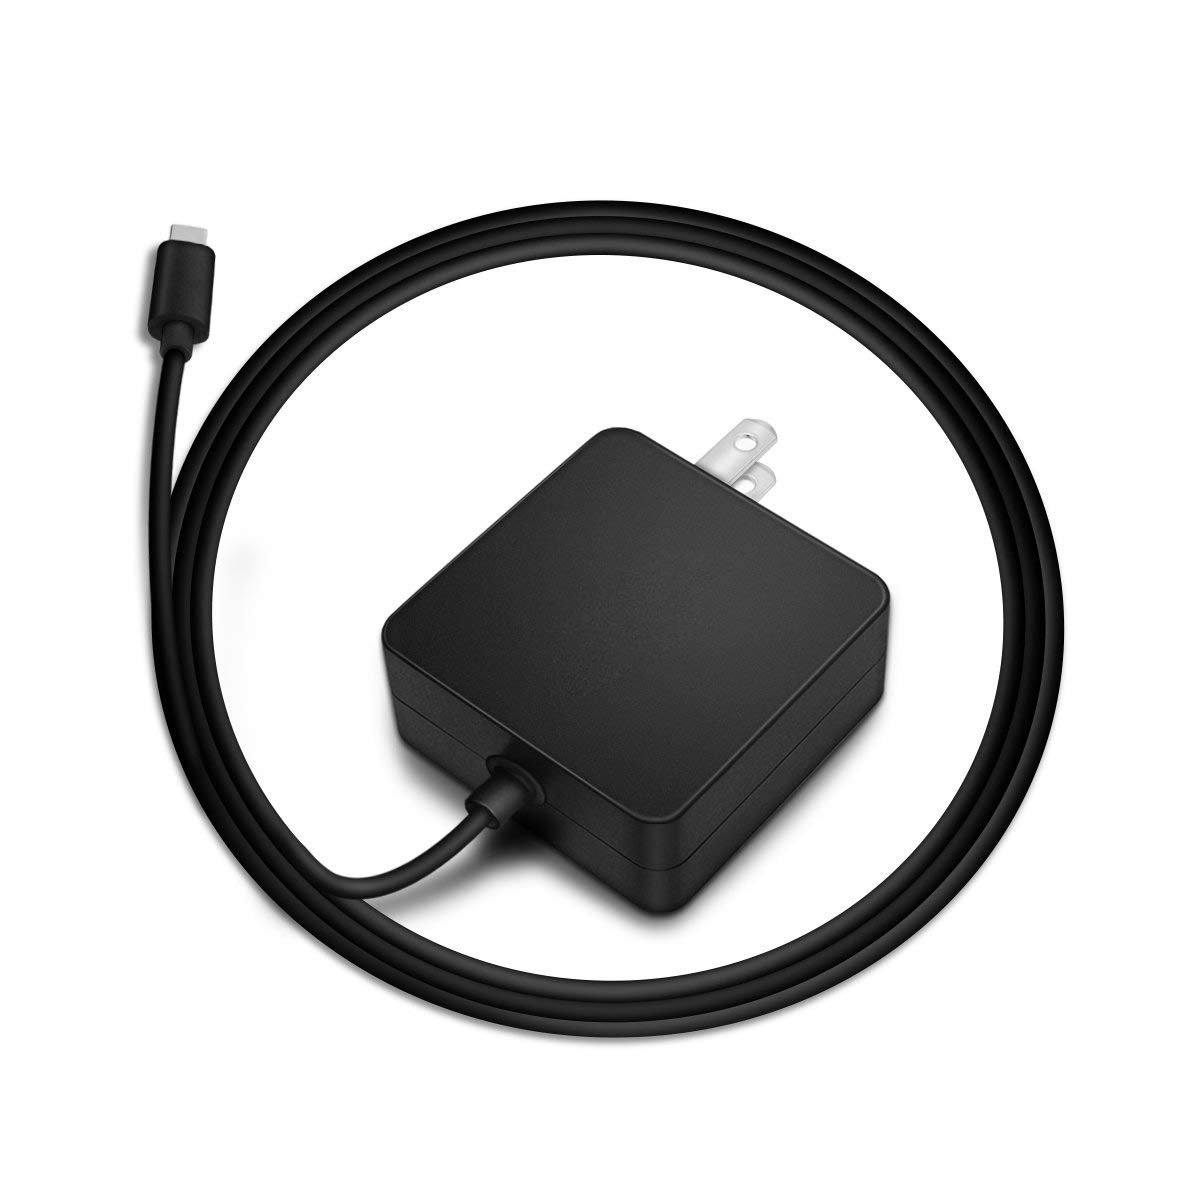 Dexpt USB C AC Charger Compatible Lenovo ThinkPad T580 T580s T470 T480 T480s T570 E480 E580 E585 L380 L380 Yoga L480 L580 Yoga 370 730 730-13IKB Type C Laptop Power Supply Adapter Cord [UL Listed] by Dexpt (Image #1)